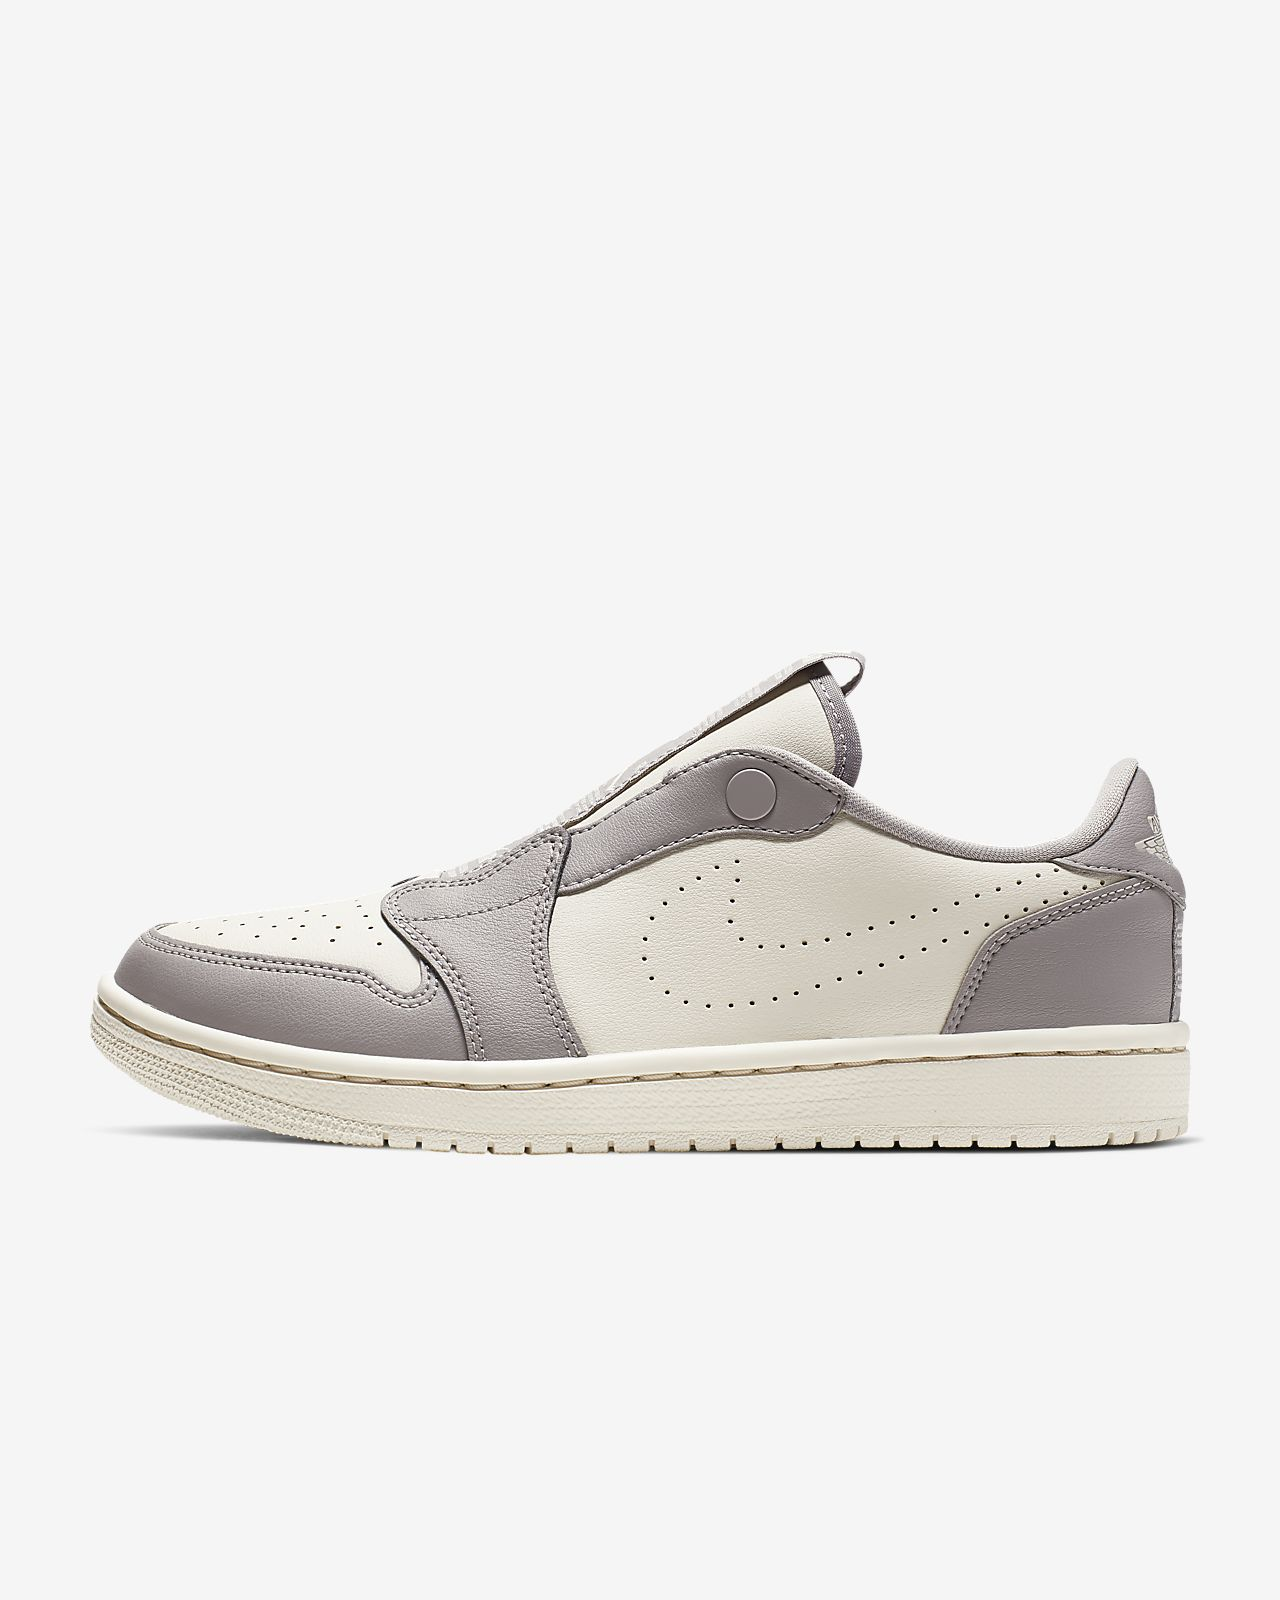 differently 0aff4 b212e Air Jordan 1 Retro Low Slip Women's Shoe